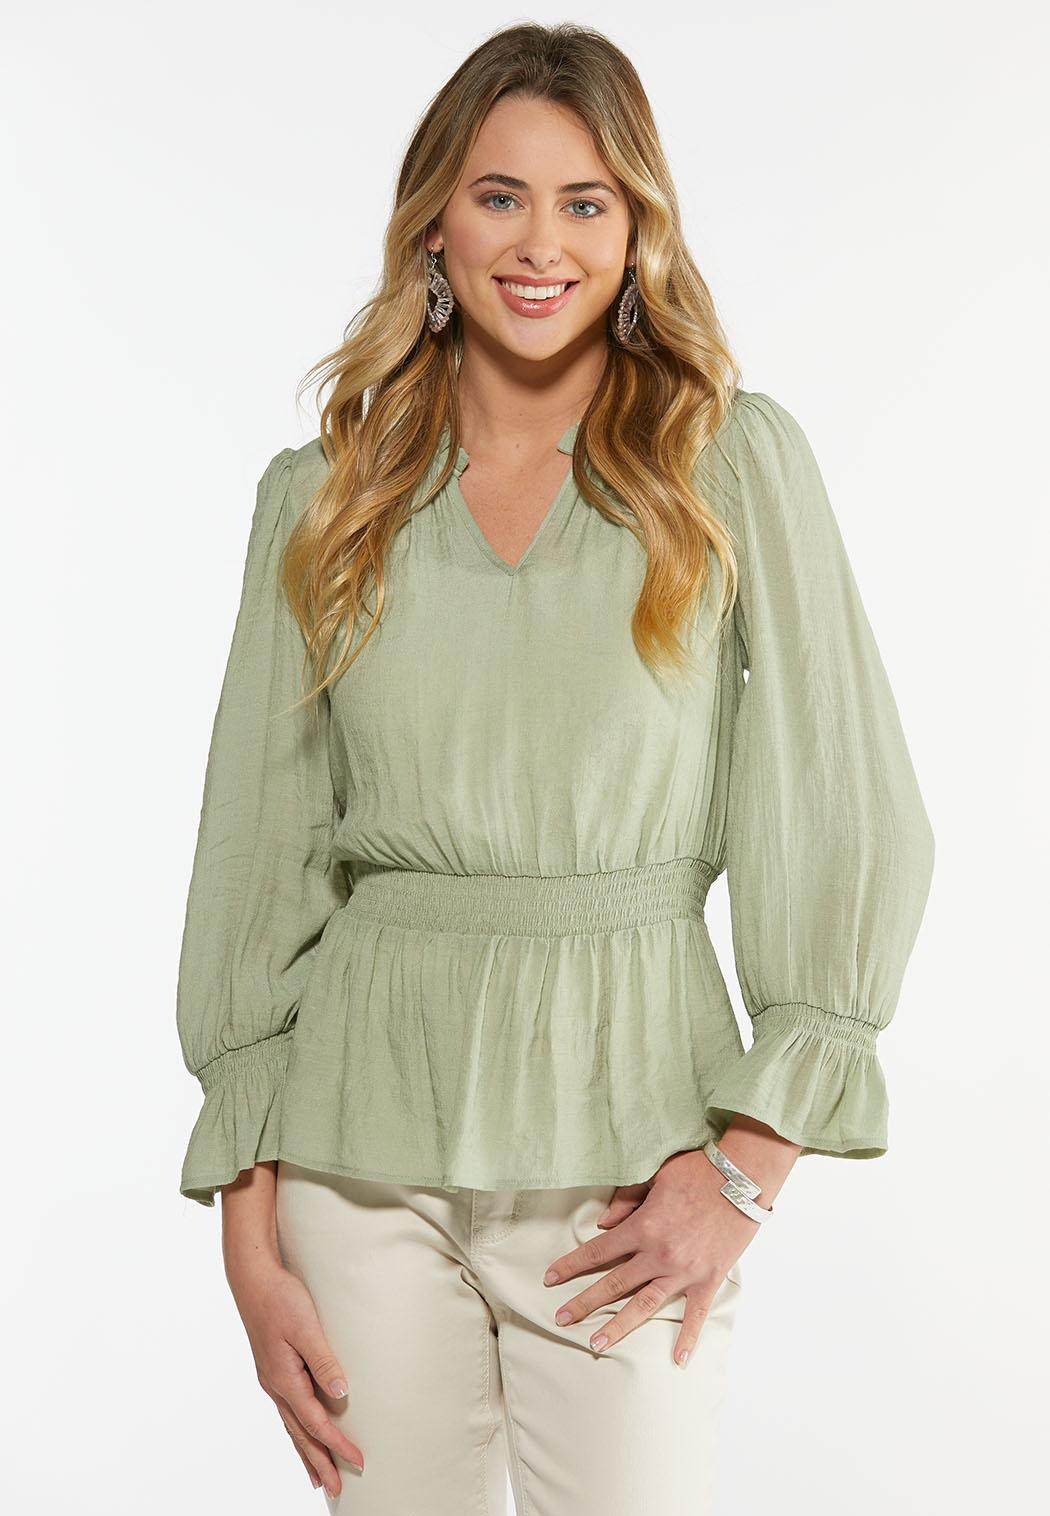 Sage Peplum Top Shirts Blouses Cato Fashions There's something so flirty and sophisticated about peplum tops, and bebe's peplum tops will add the extra flare that takes your outfit to a whole new level. sage peplum top shirts amp blouses cato fashions